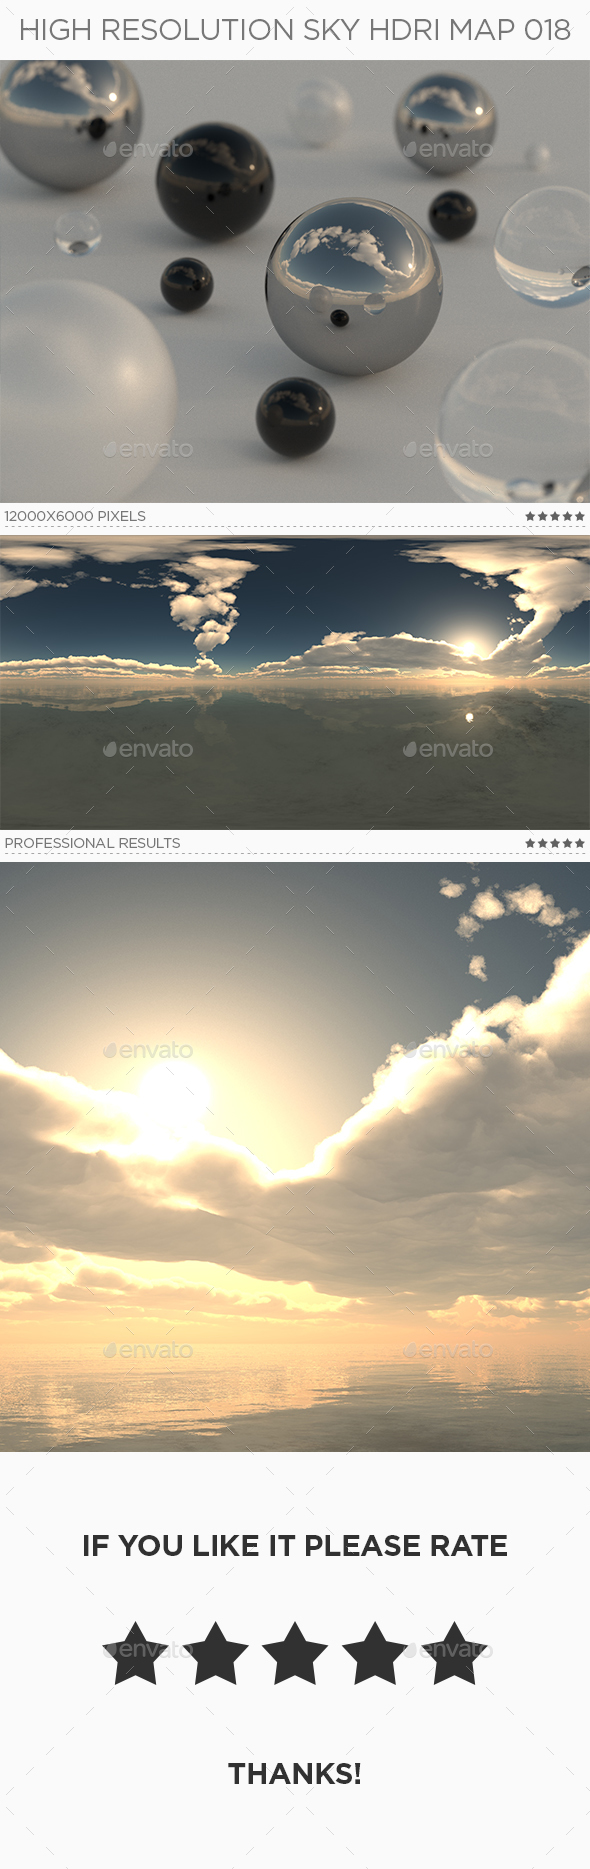 High Resolution Sky HDRi Map 018 - 3DOcean Item for Sale